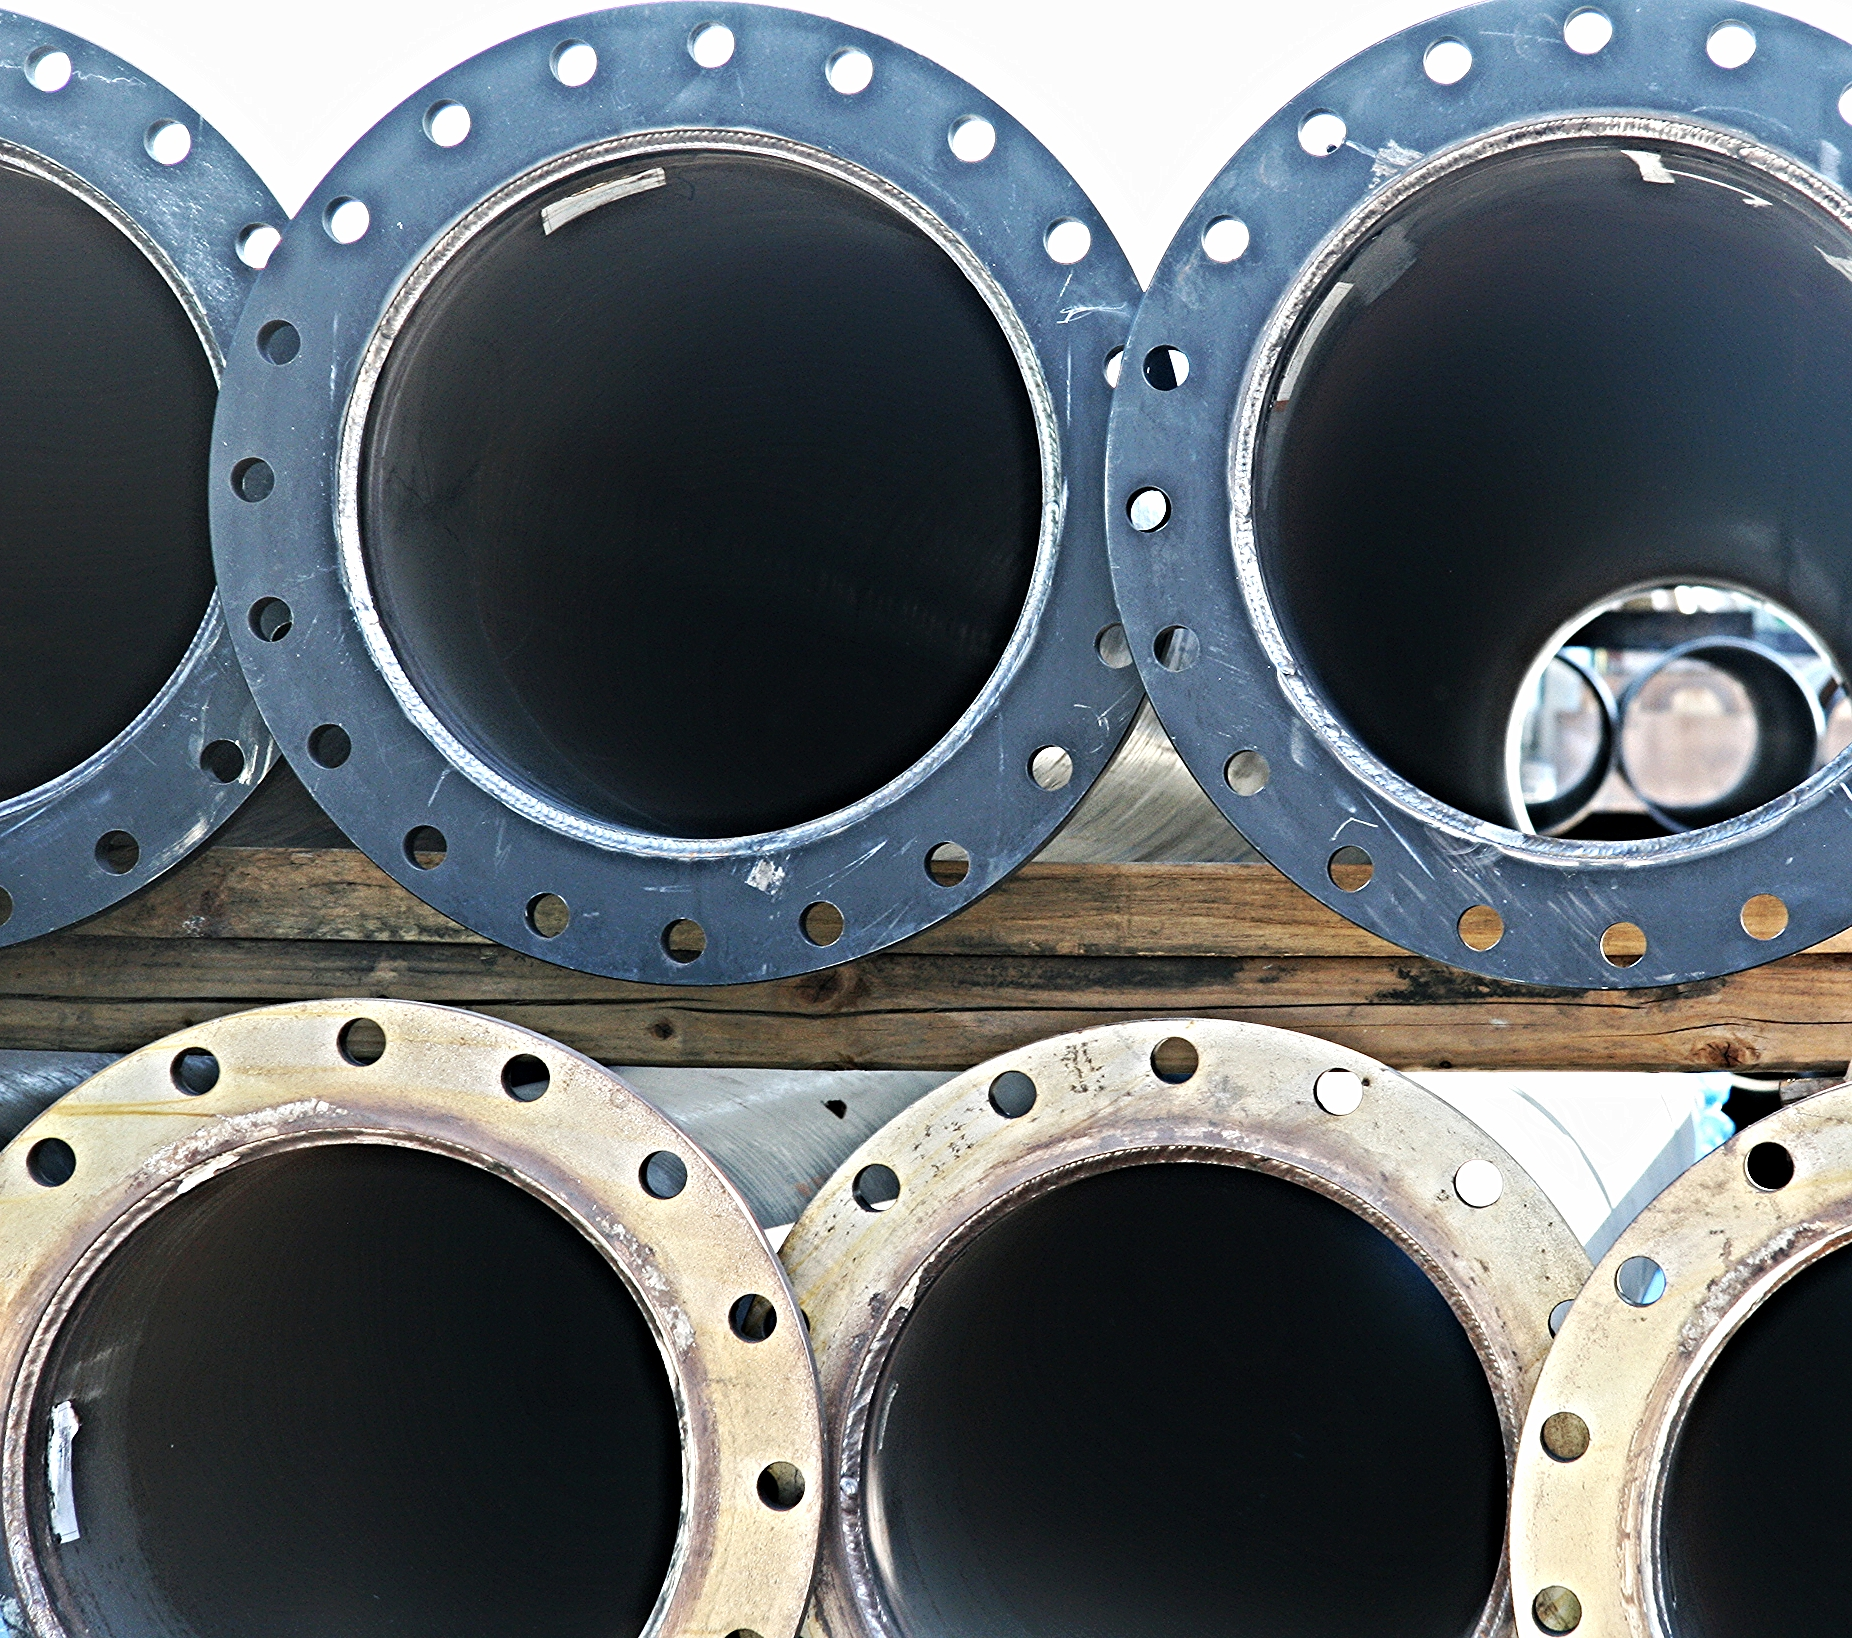 Prefabricated pipe completed at Boneso Brothers